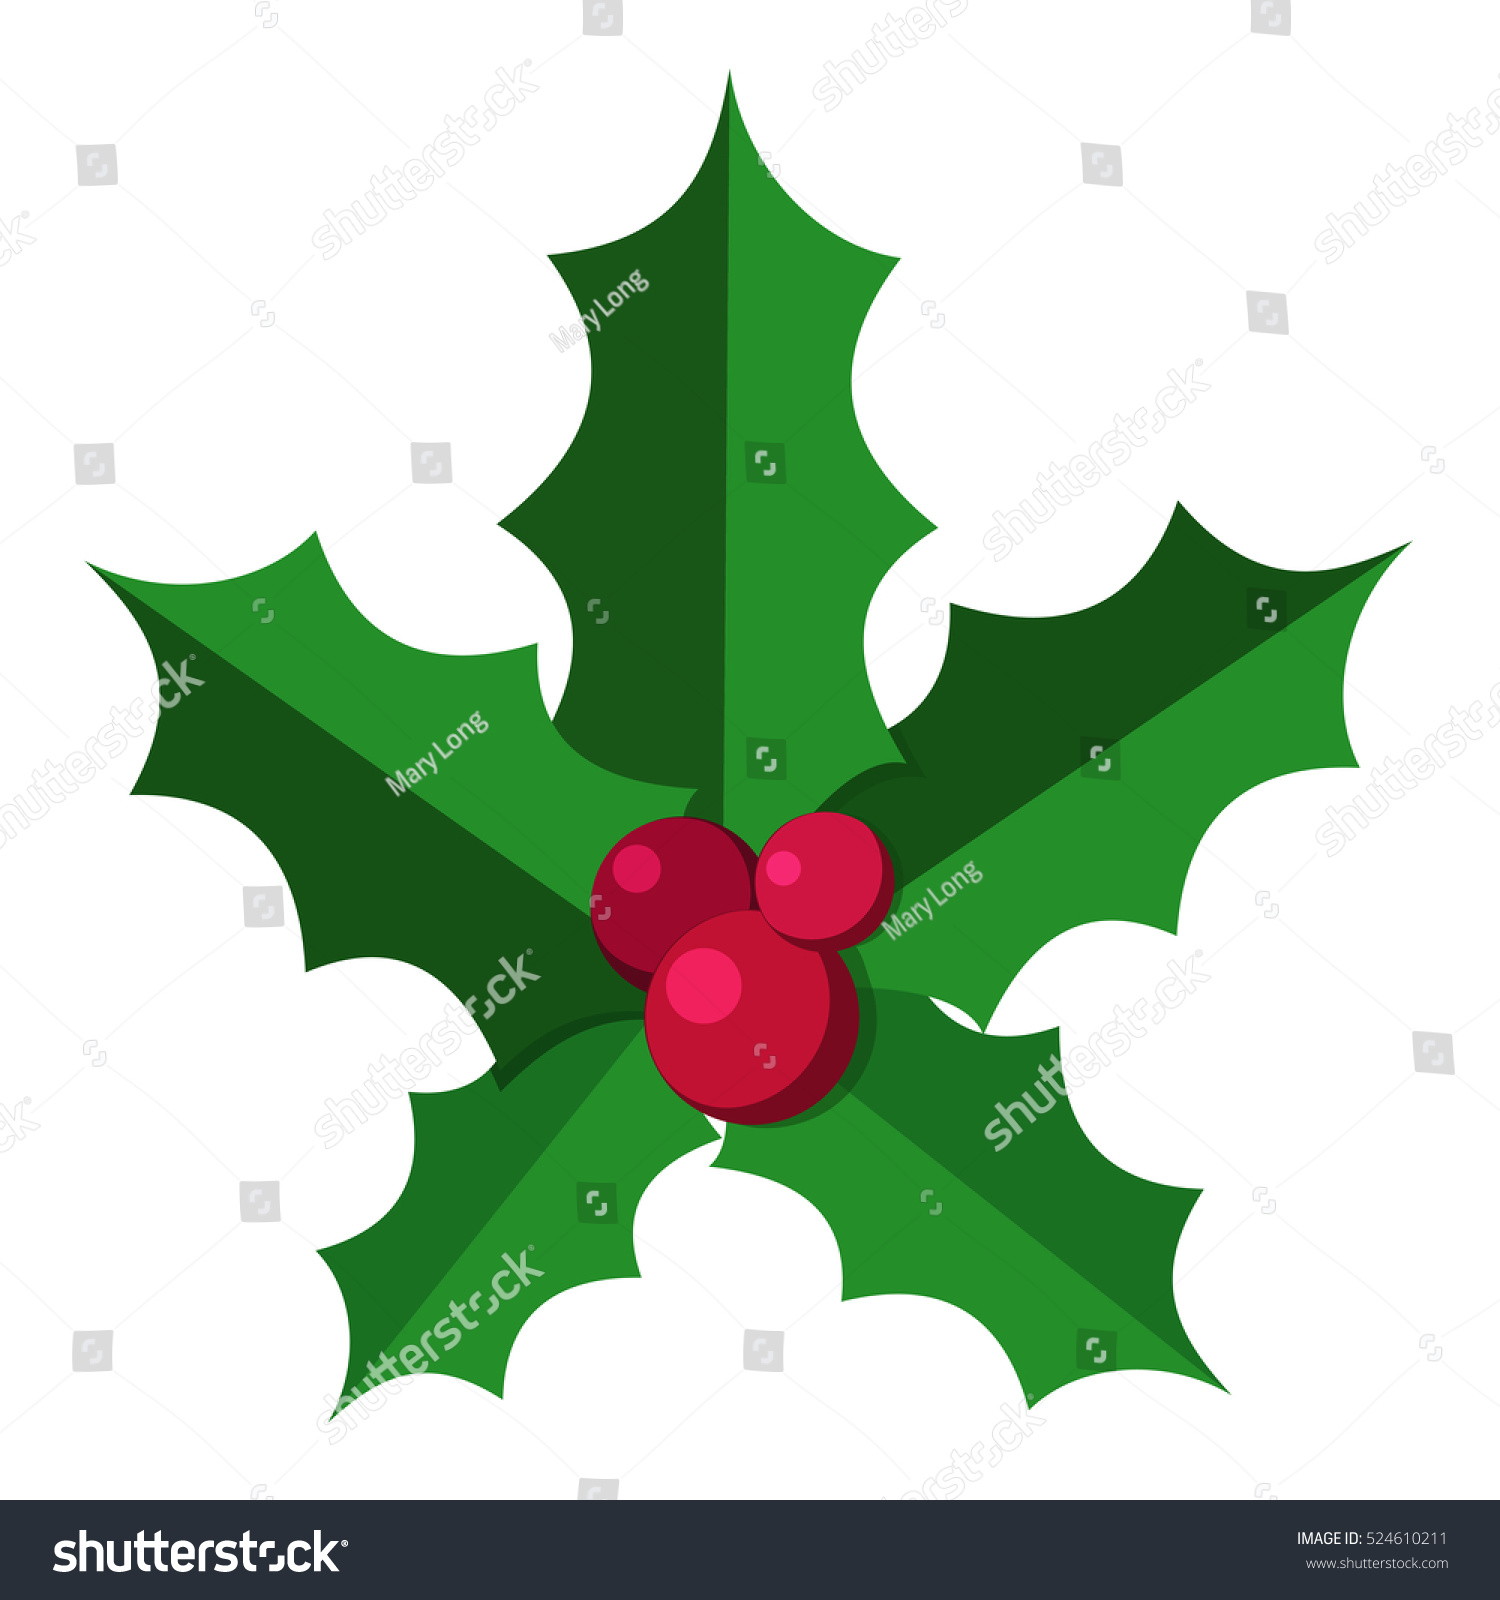 Why is holly a traditional christmas decoration - European Christmas Berry Holly Ilex Aquifolium Leaves And Fruit Floral Branch Red Xmas Winter Decor